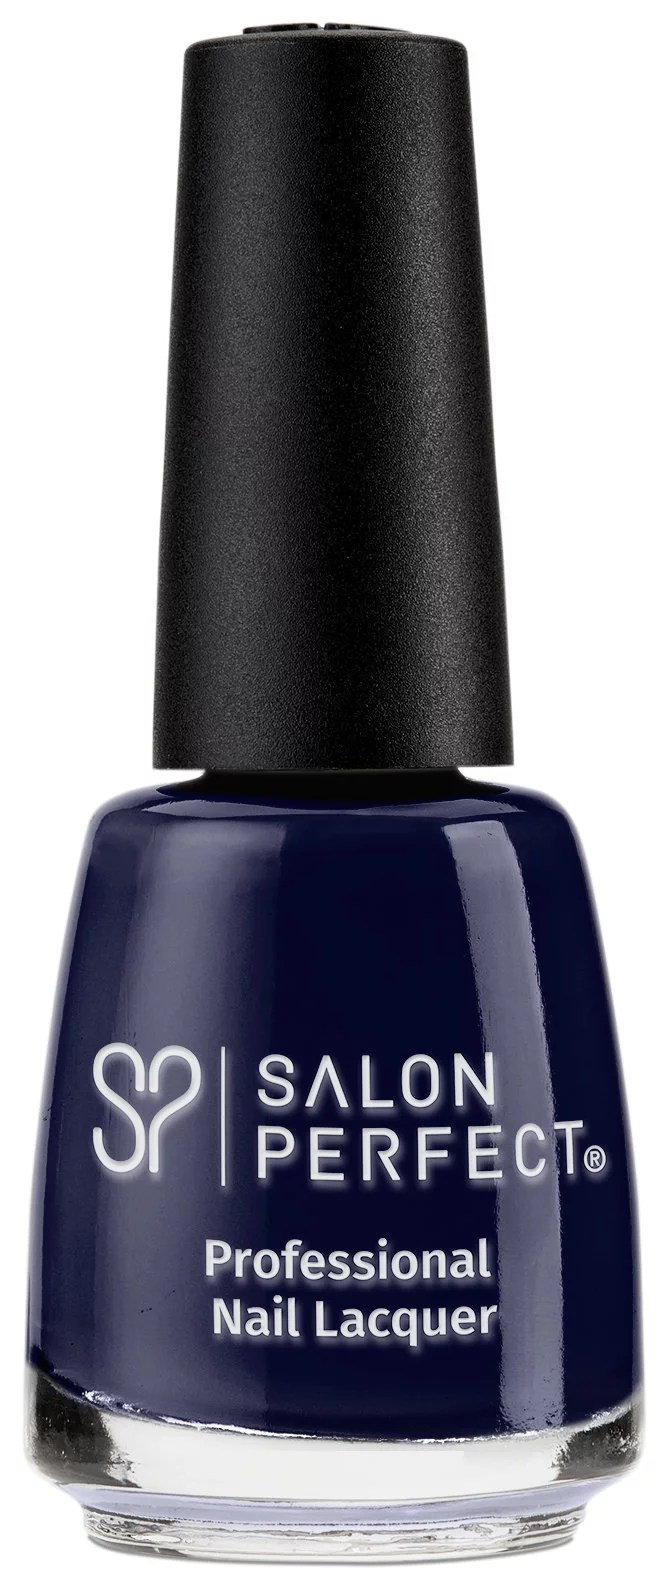 Salon Fly Salon Perfect Nail Lacquer That S So Fly Brickseek